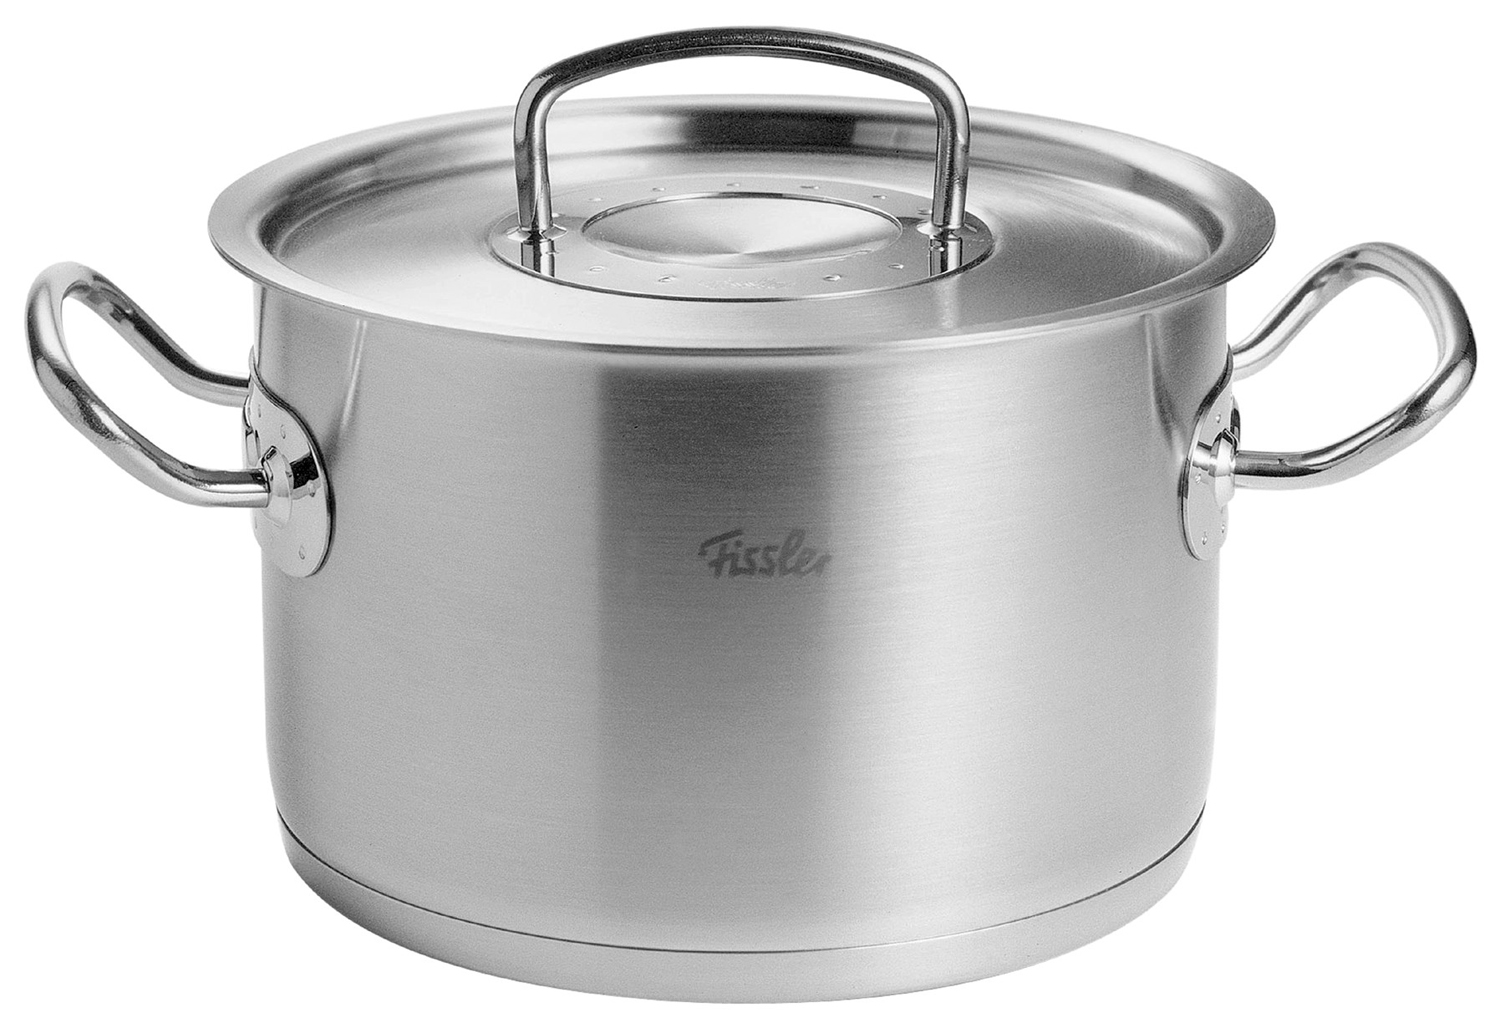 Fissler Original Pro Collection Stainless Steel Stew Pot, 10.9 Quart